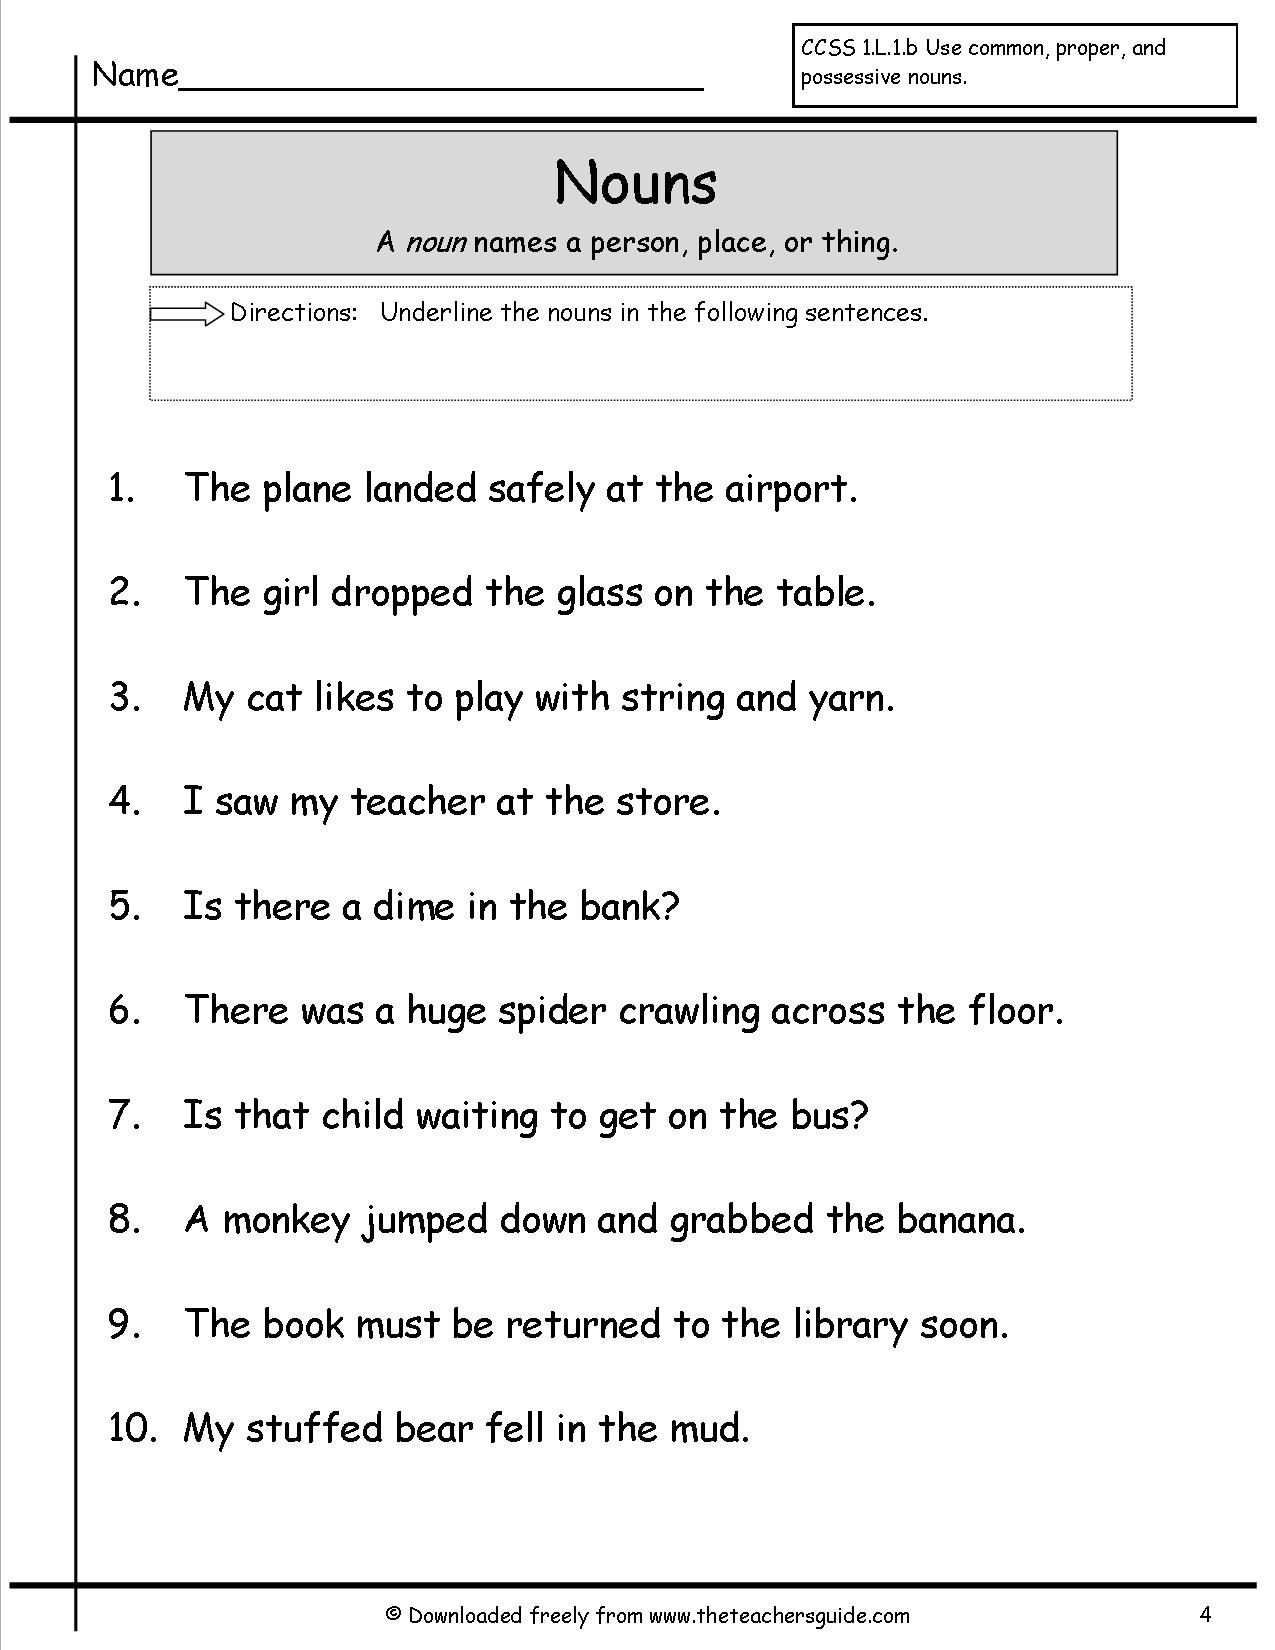 4th Grade Noun Worksheet